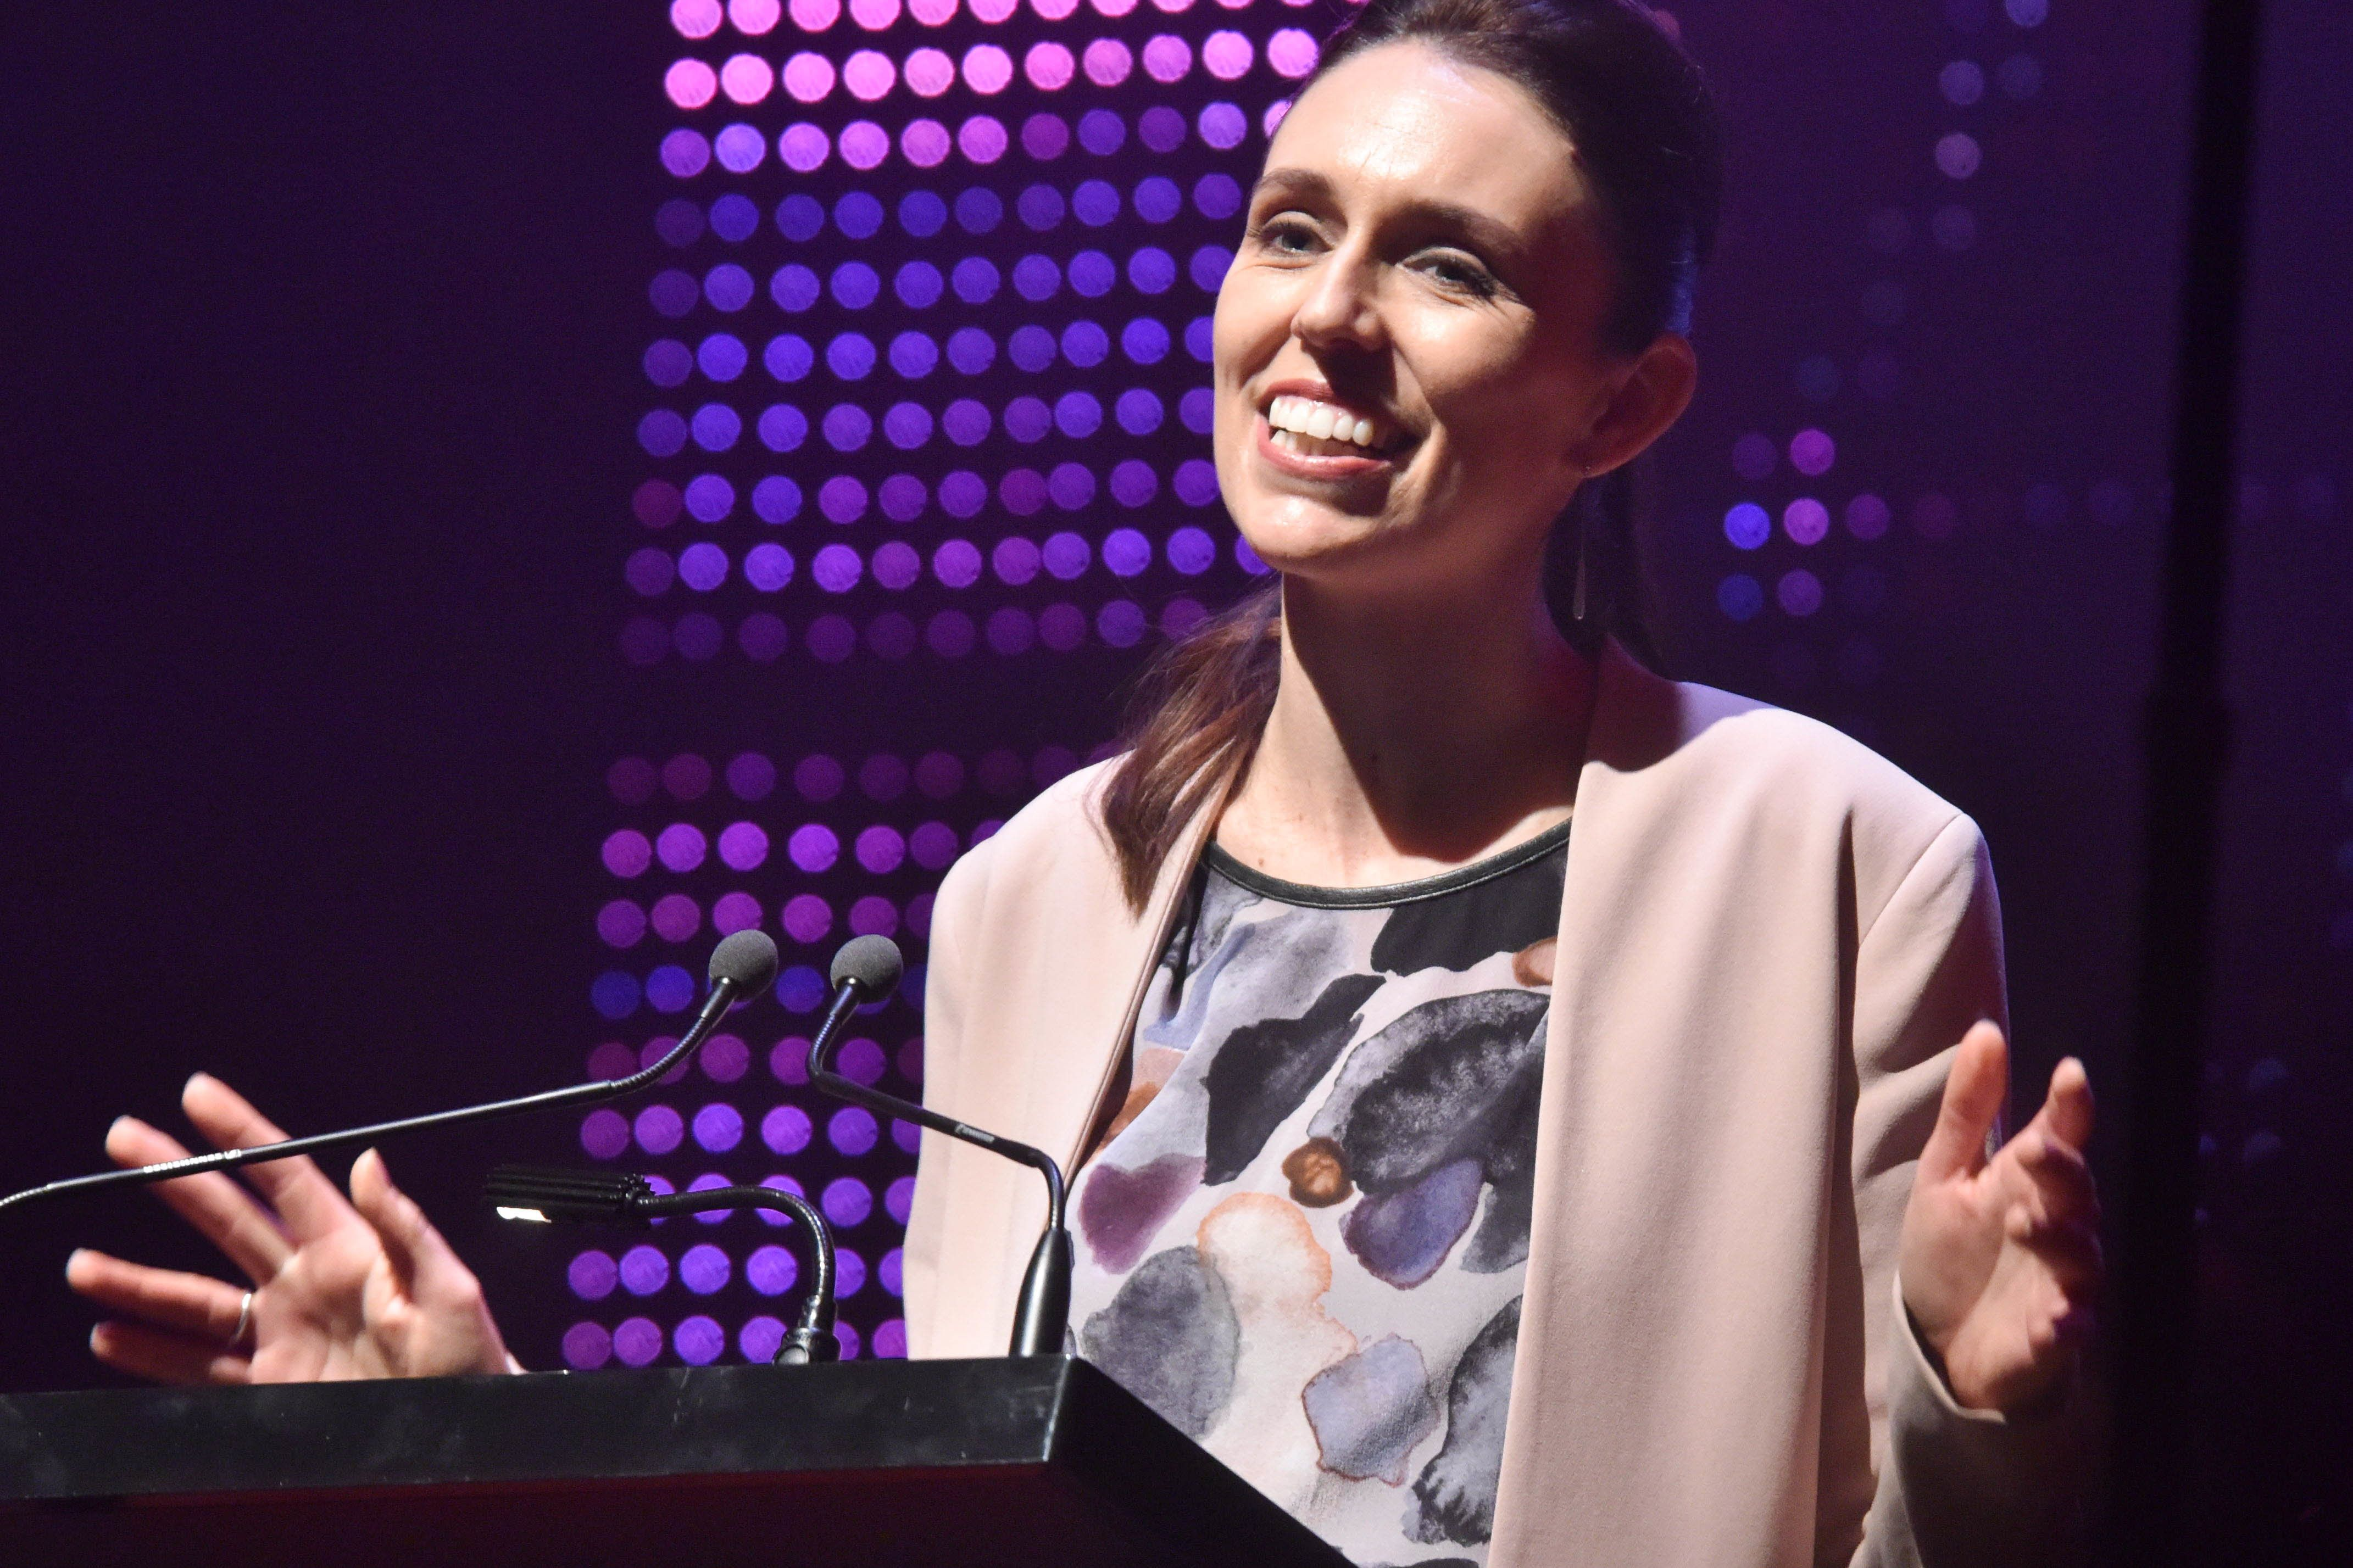 TOWN HALL, AUCKLAND, NEW ZEALAND - 2017/08/20: Labor Party leader Jacinda Ardern makes speech during the  official campaign launch at Auckland Town Hall , New Zealand on Aug 20, 2017. Jacinda Ardern is a New Zealand politician who has been the Leader of the Labour Party and Leader of the Opposition since 1 August 2017.The 2017 New Zealand general election is scheduled to be held on  23 September 2017 . The current government is National Party. (Photo by Shirley Kwok/Pacific Press/LightRocket via Getty Images)